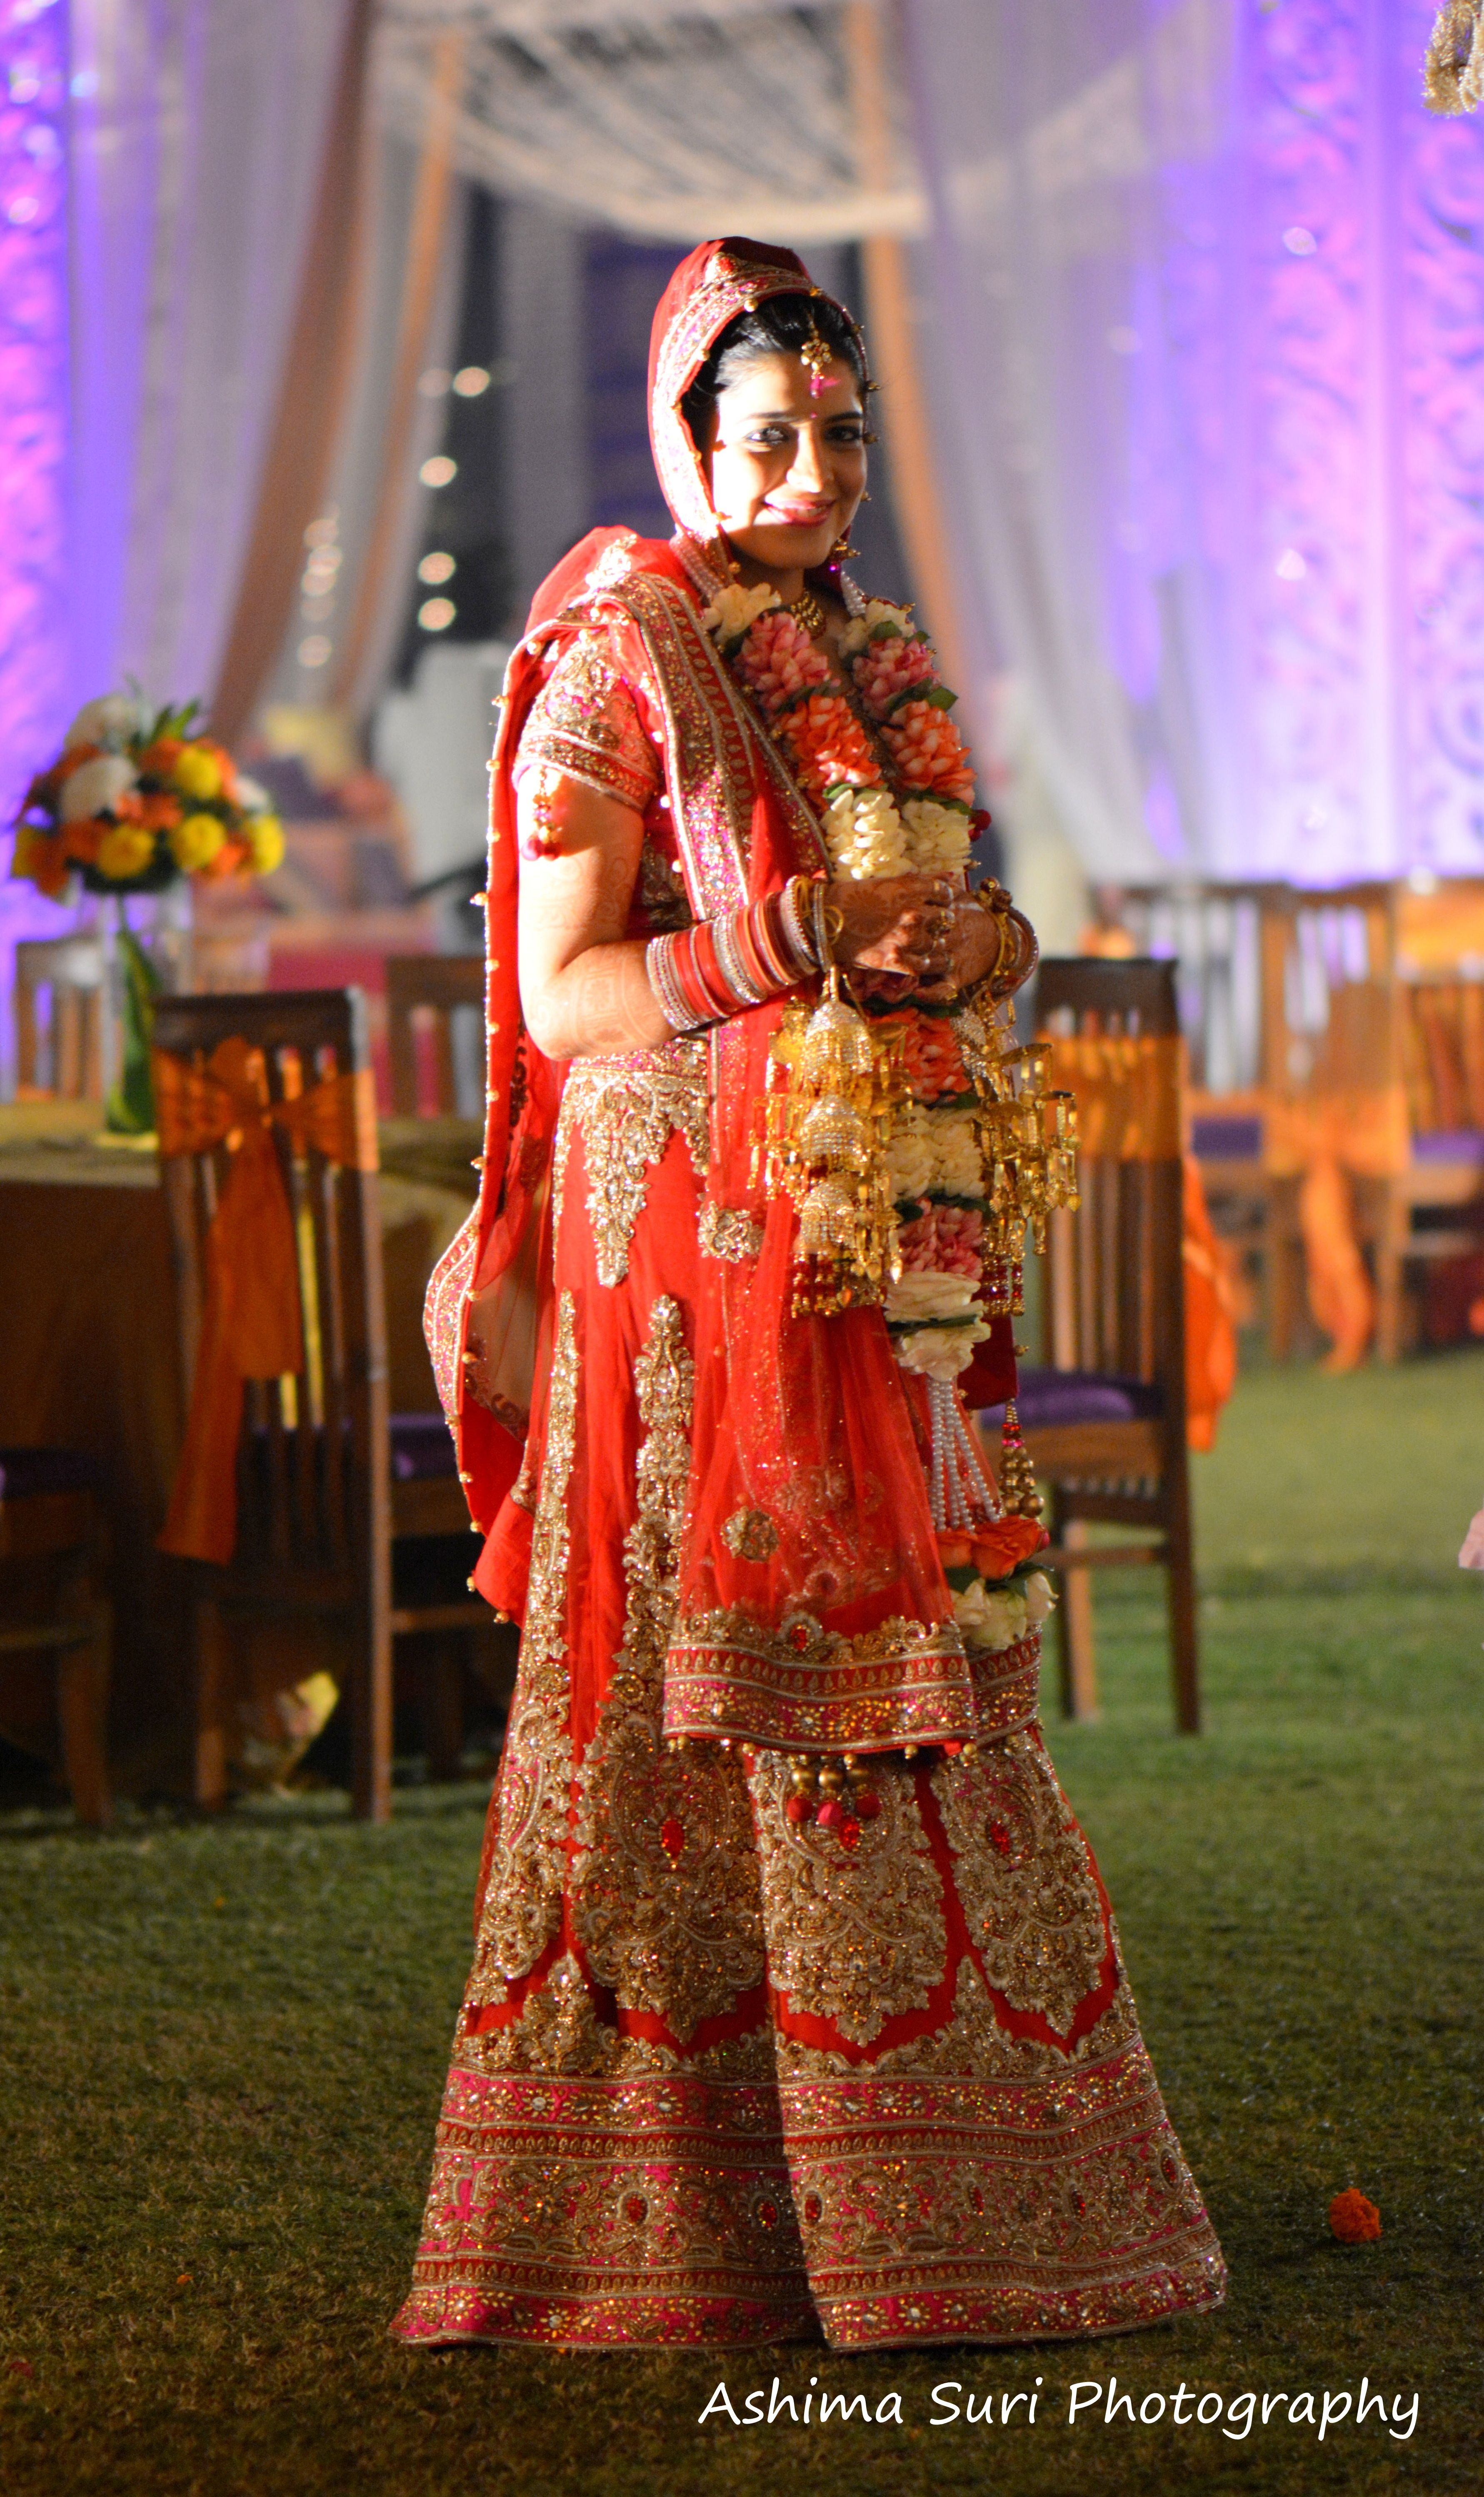 Super pretty pink and red wedding lehnga!